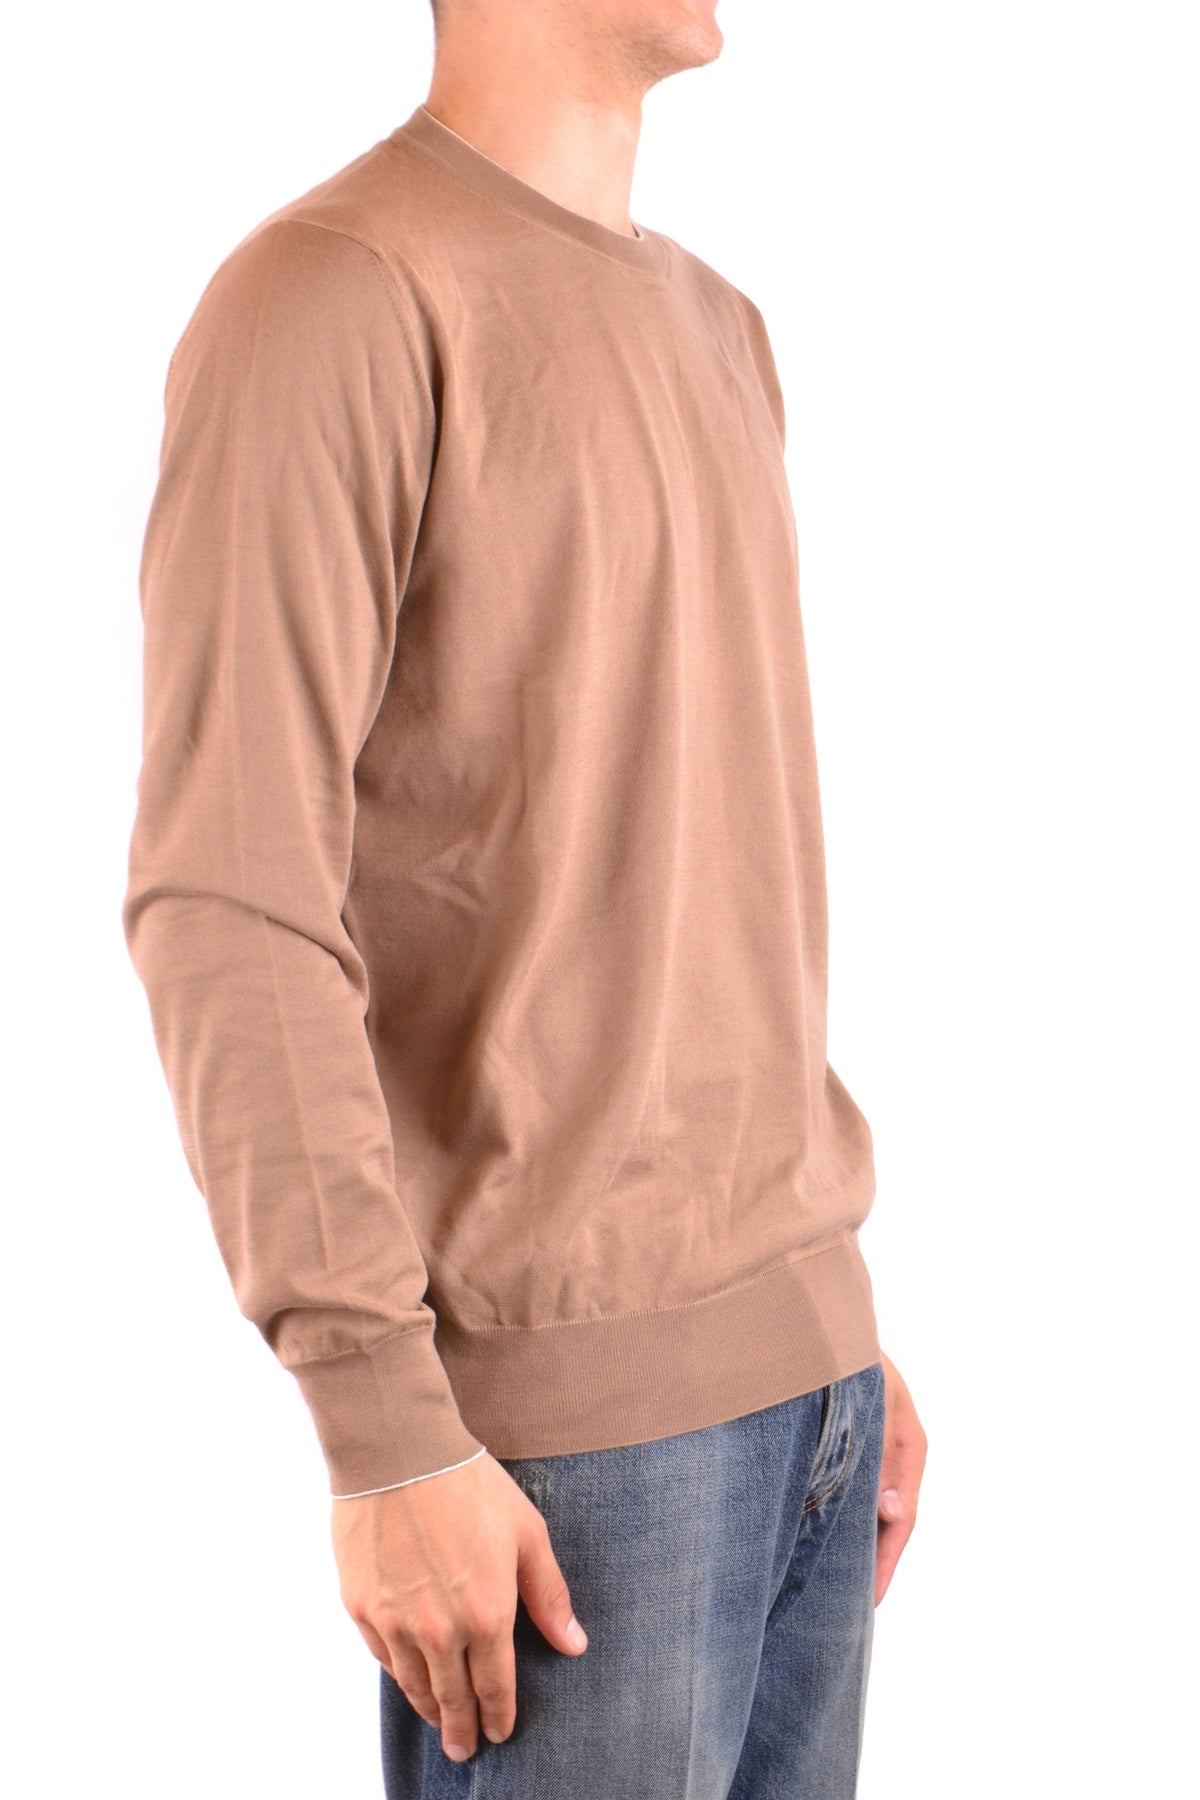 Sweater Brunello Cucinelli-Sweater - MAN-Product Details Season: Spring / SummerTerms: New With LabelMain Color: MarrónGender: ManMade In: ItalyManufacturer Part Number: M2900100 Cf361Size: ItYear: 2018Clothing Type: Sweater Composition: Cotton 100%-Keyomi-Sook